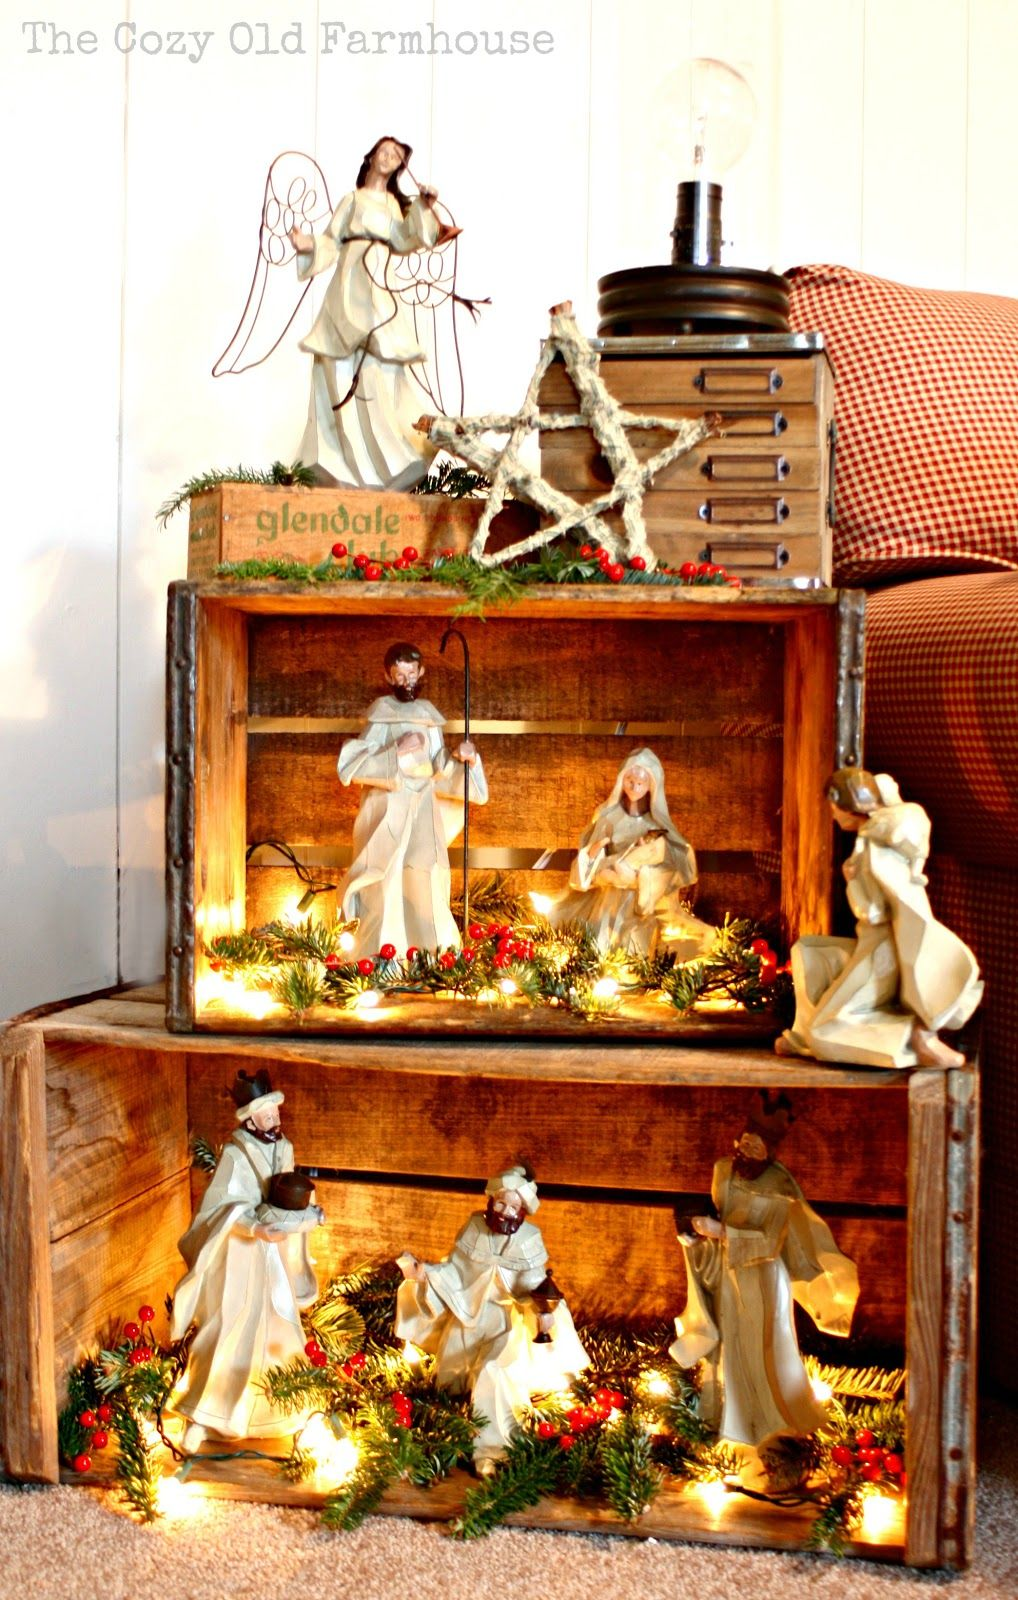 What a cute way to display the Nativity set! Christmas